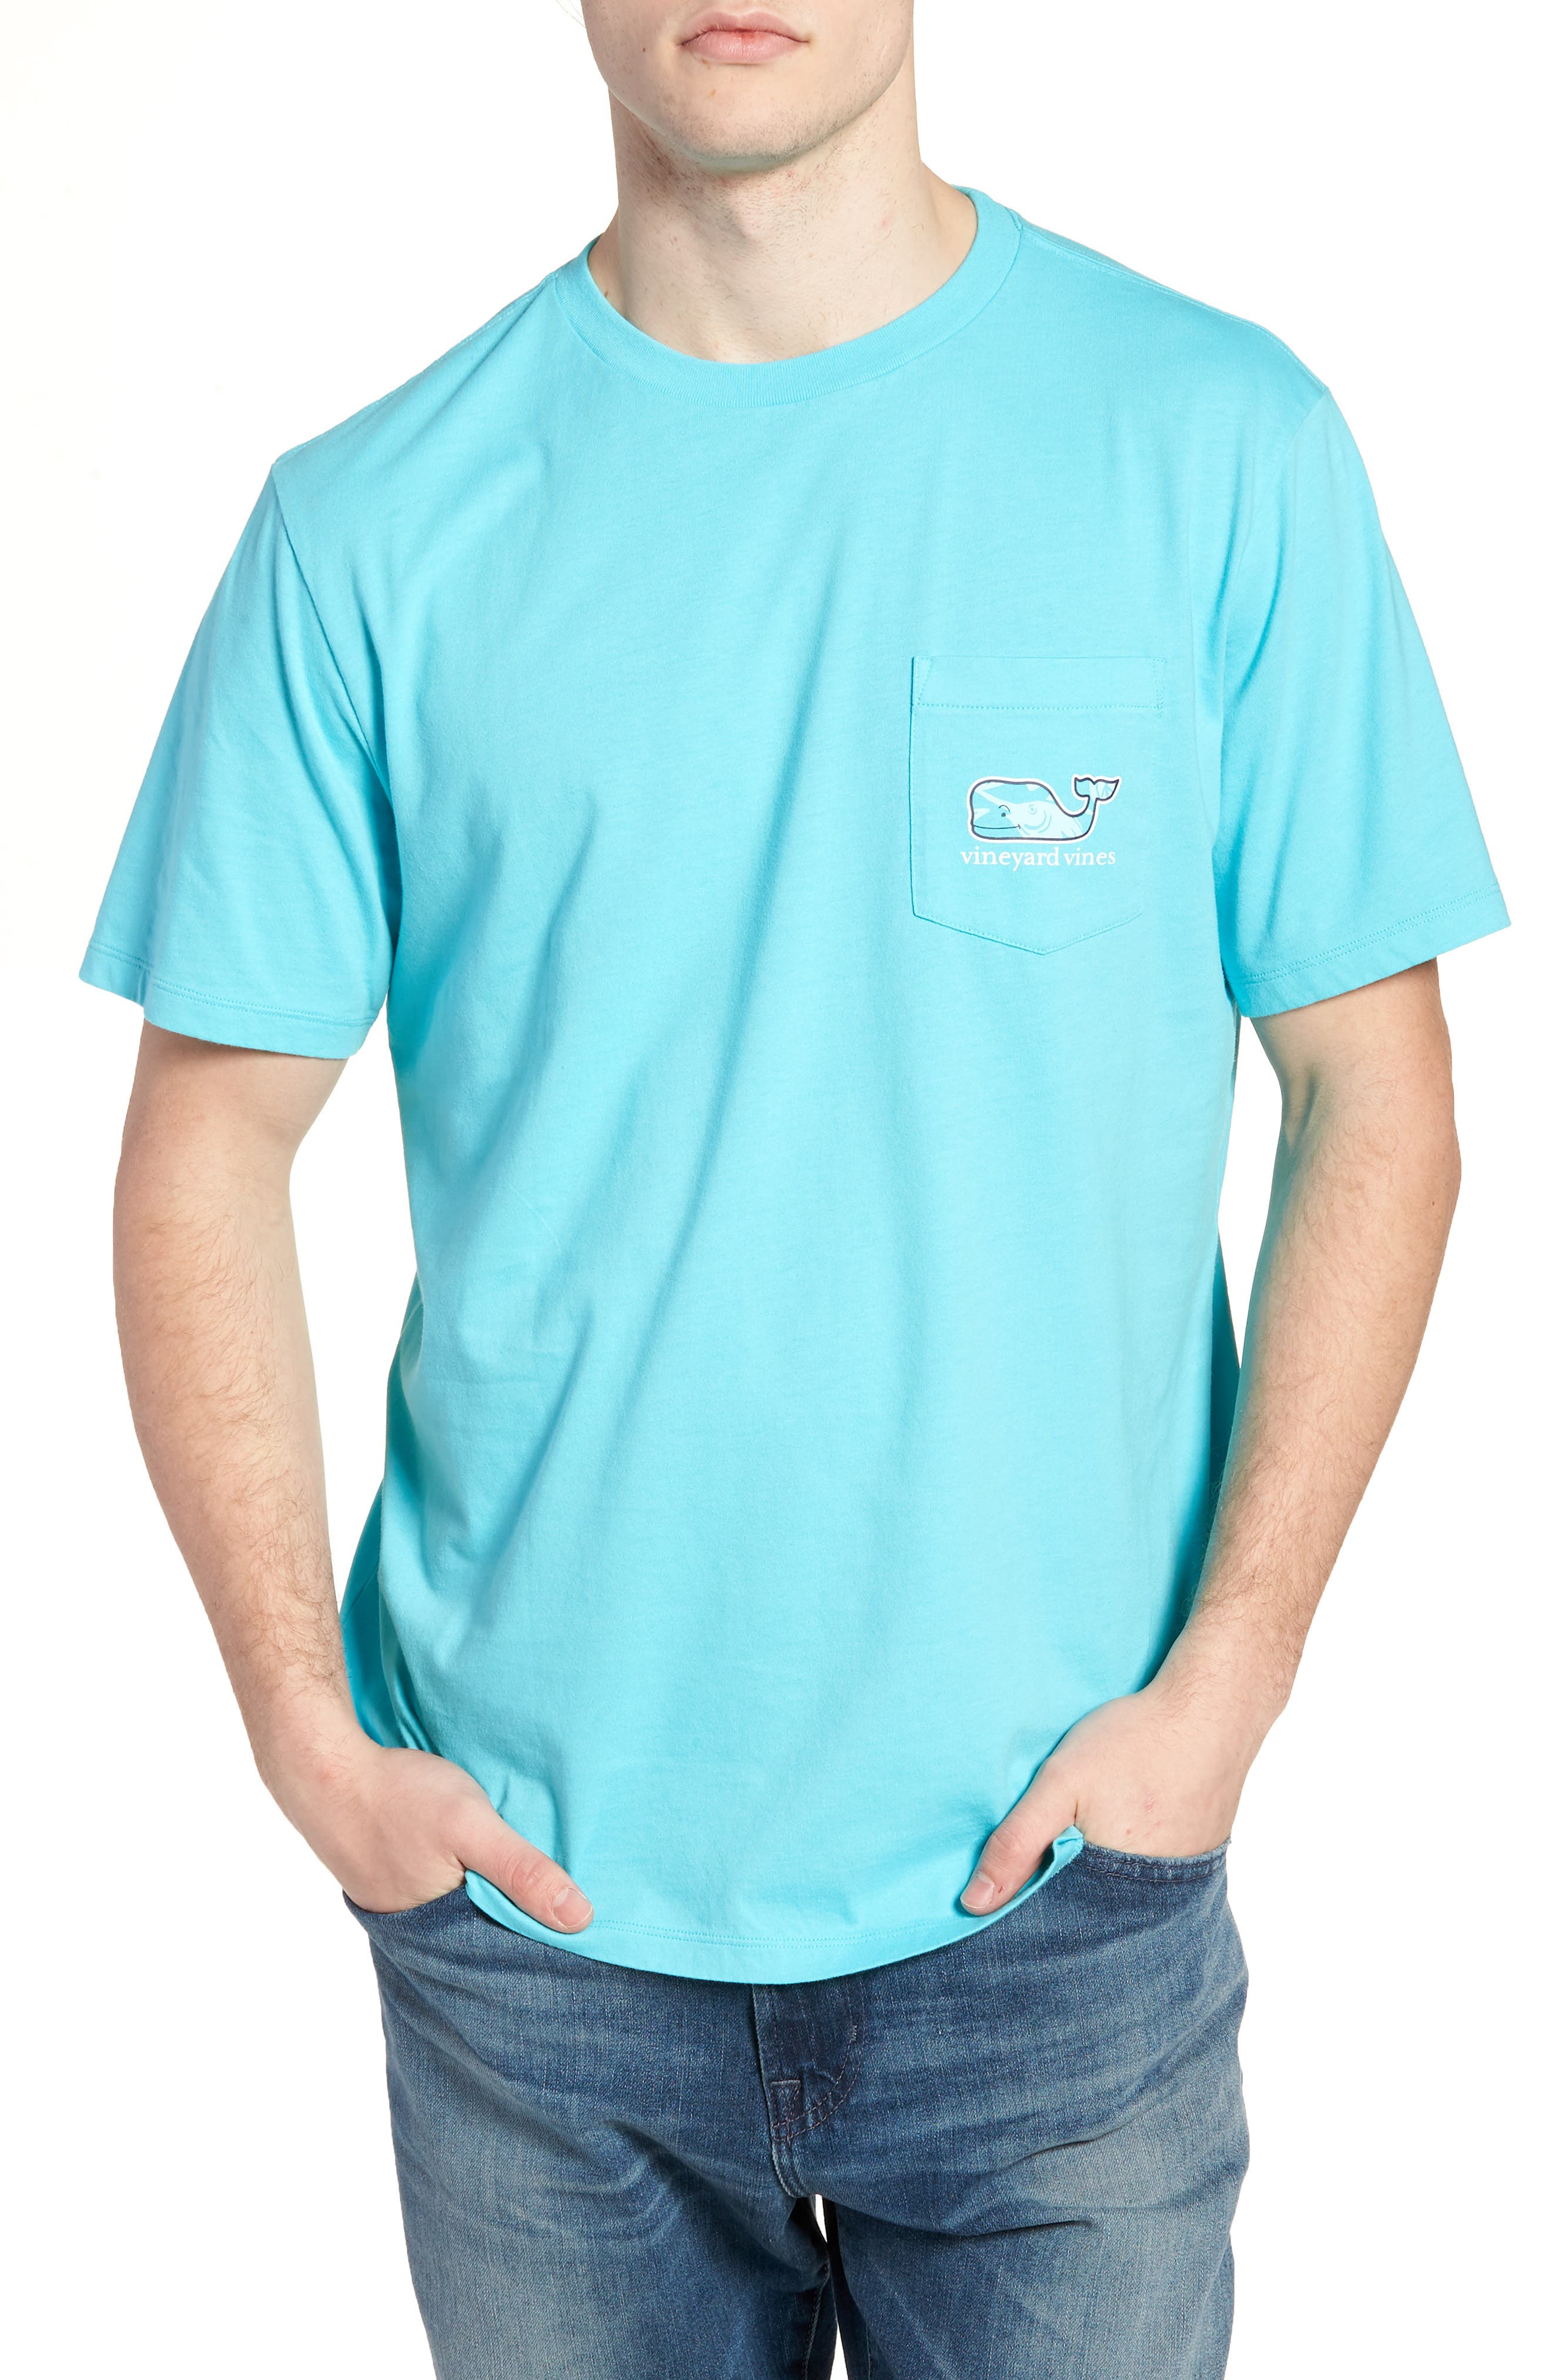 Marlin out of Water Whale Fill Pocket T-Shirt,                             Main thumbnail 1, color,                             Turquoise